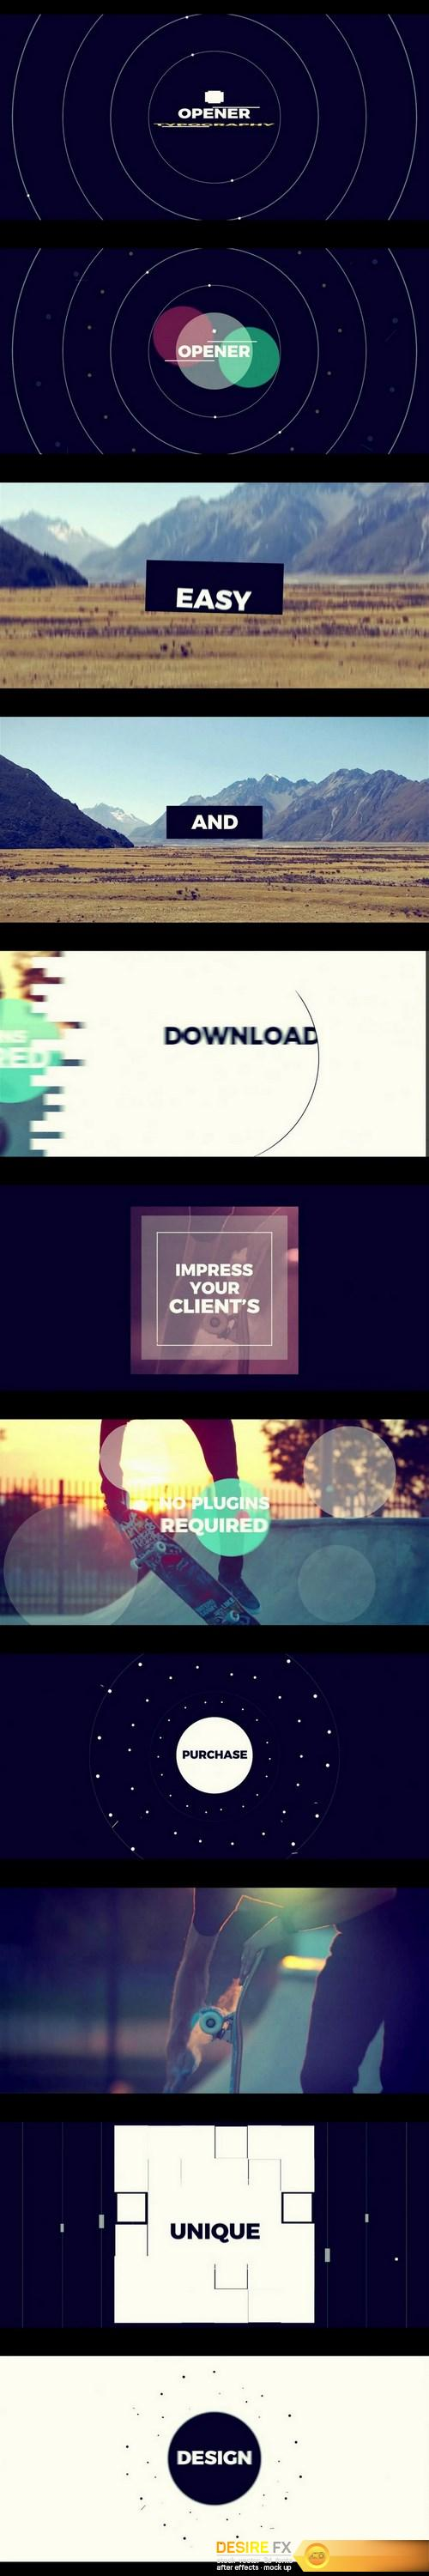 after-effects-projects - Videohive 19600023 Cinematic Typography Intro